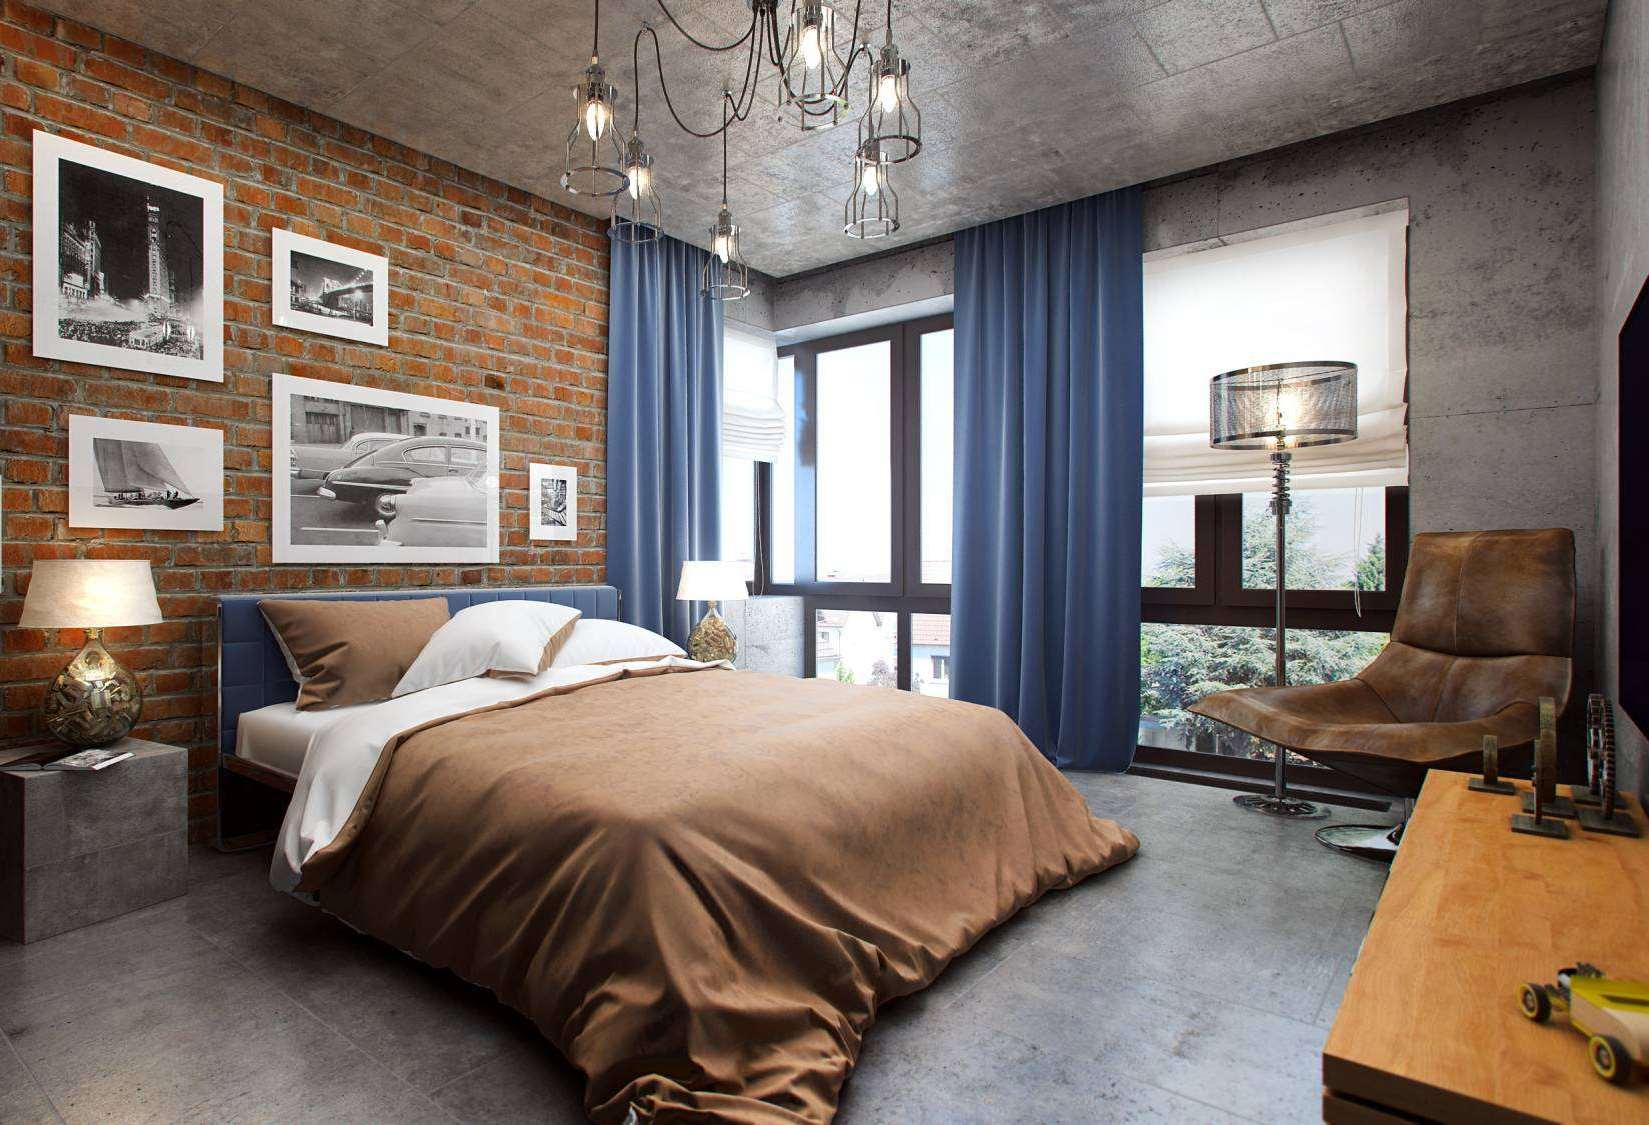 Modern designed bedroom with blue curtains right from the celing and concreted floor